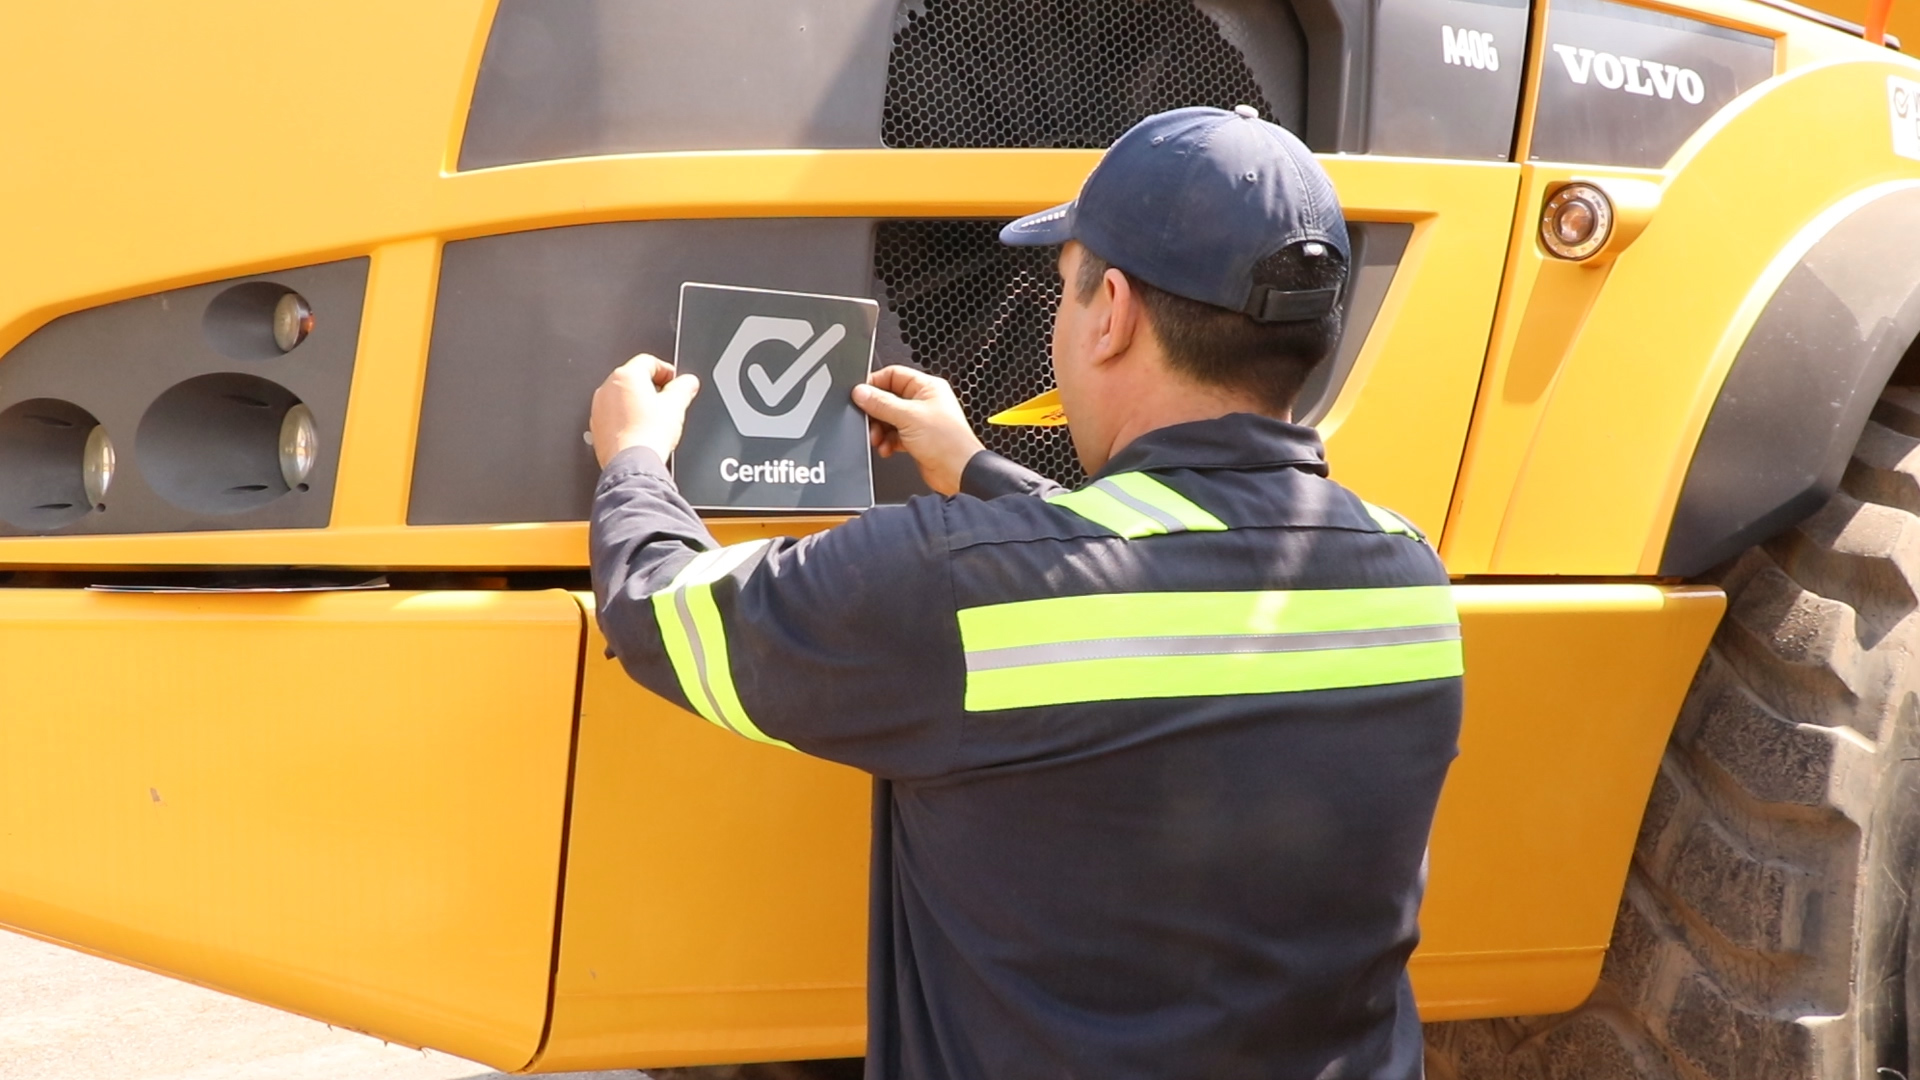 Certified sticker being placed on Volvo construction equipment